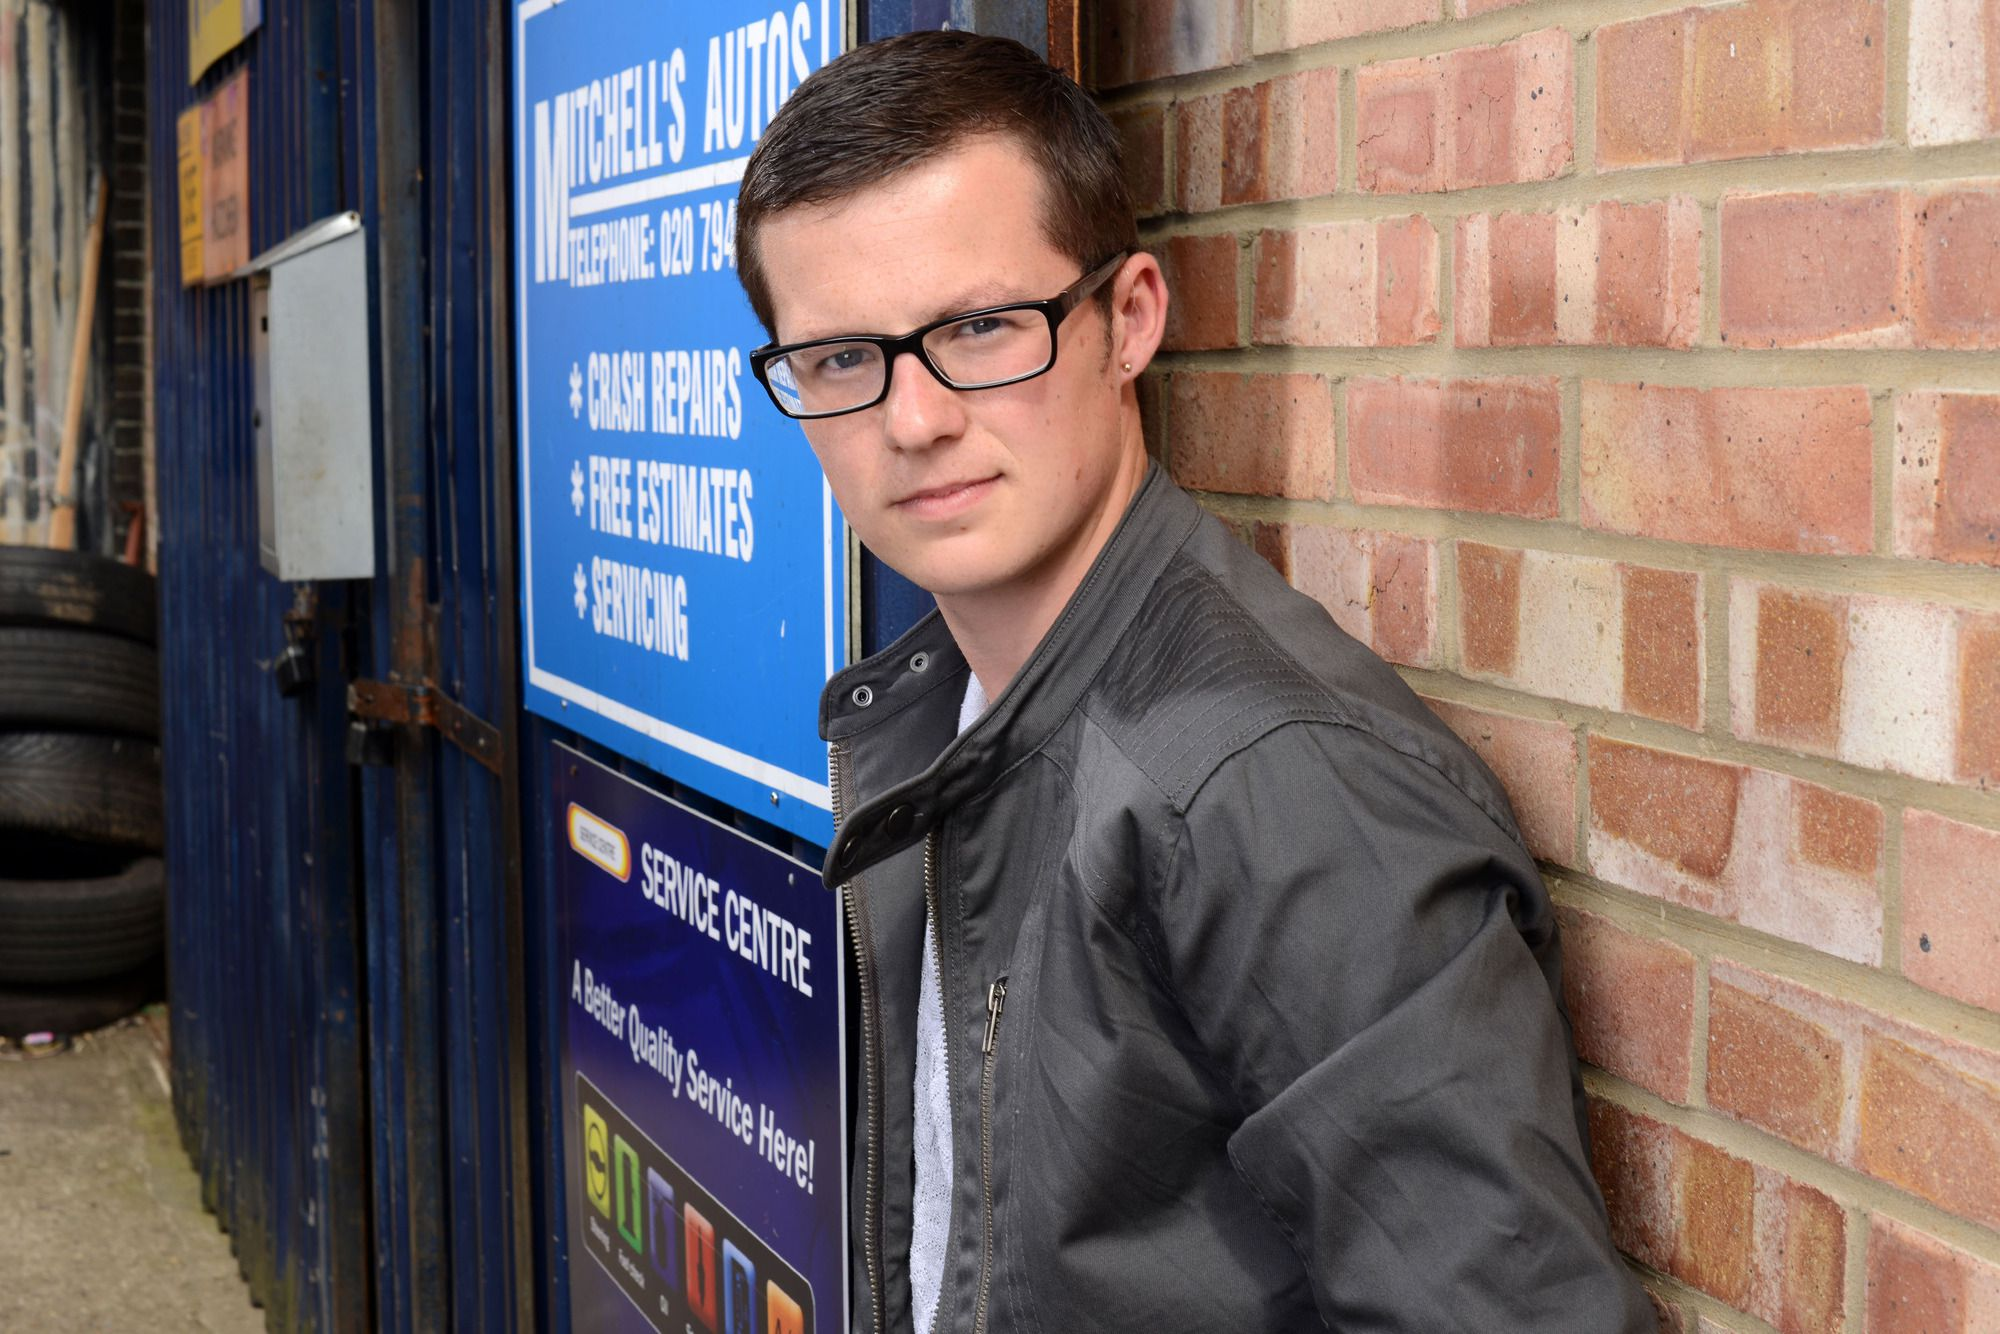 EastEnders star Harry Reid speaks out on Ben Mitchell re-cast: 'I was disappointed but I'm not upset'